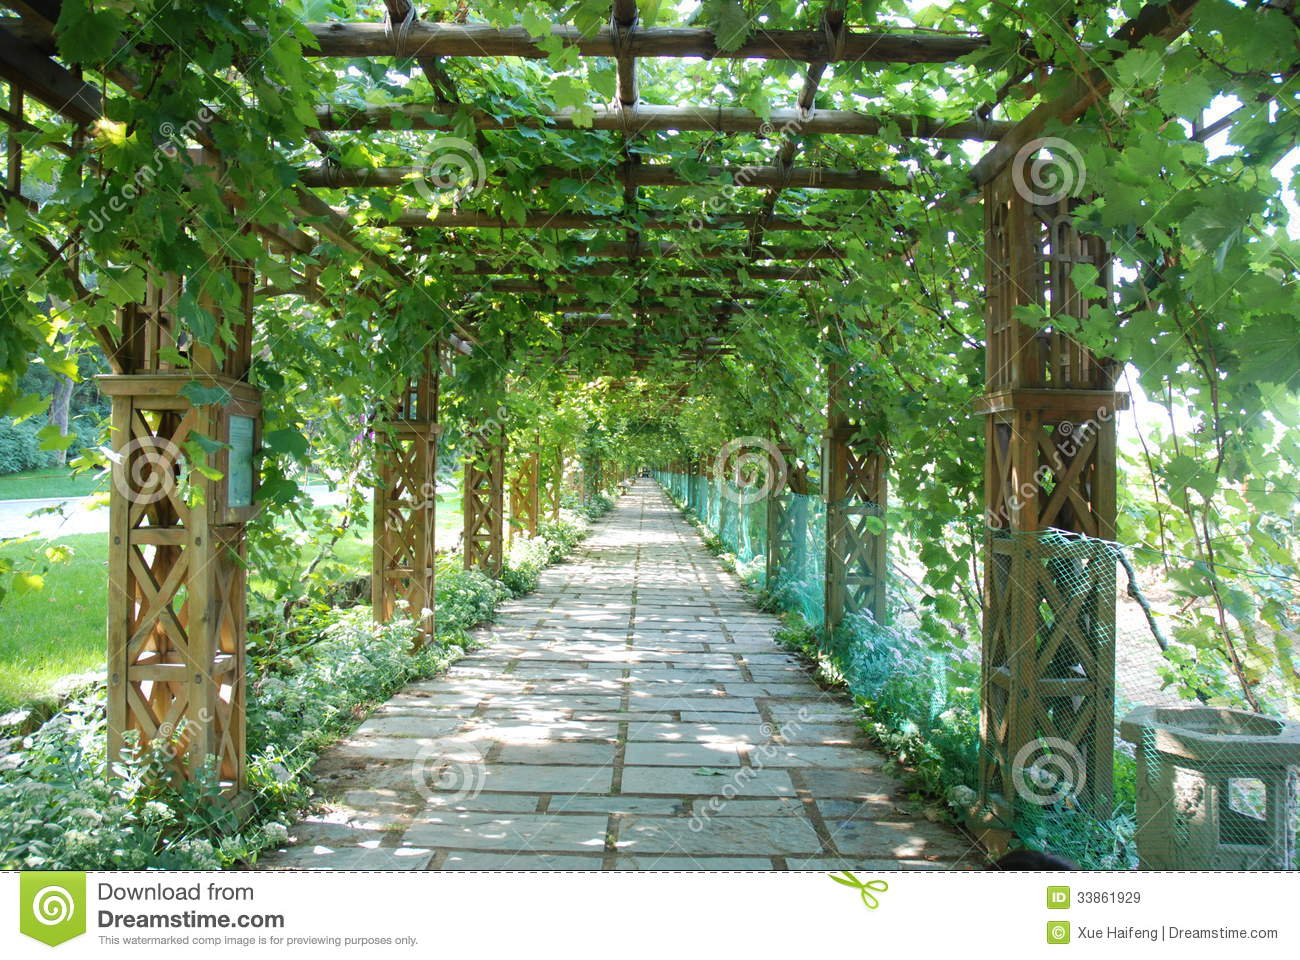 Pergole E Gazebo additionally Pergolas besides 10 Diy Garden Ideas For Using Old Pallets in addition Diy Arbor Building Plan as well The Great Ideas Of The Reclaimed Wood Furniture. on garden trellis design plans